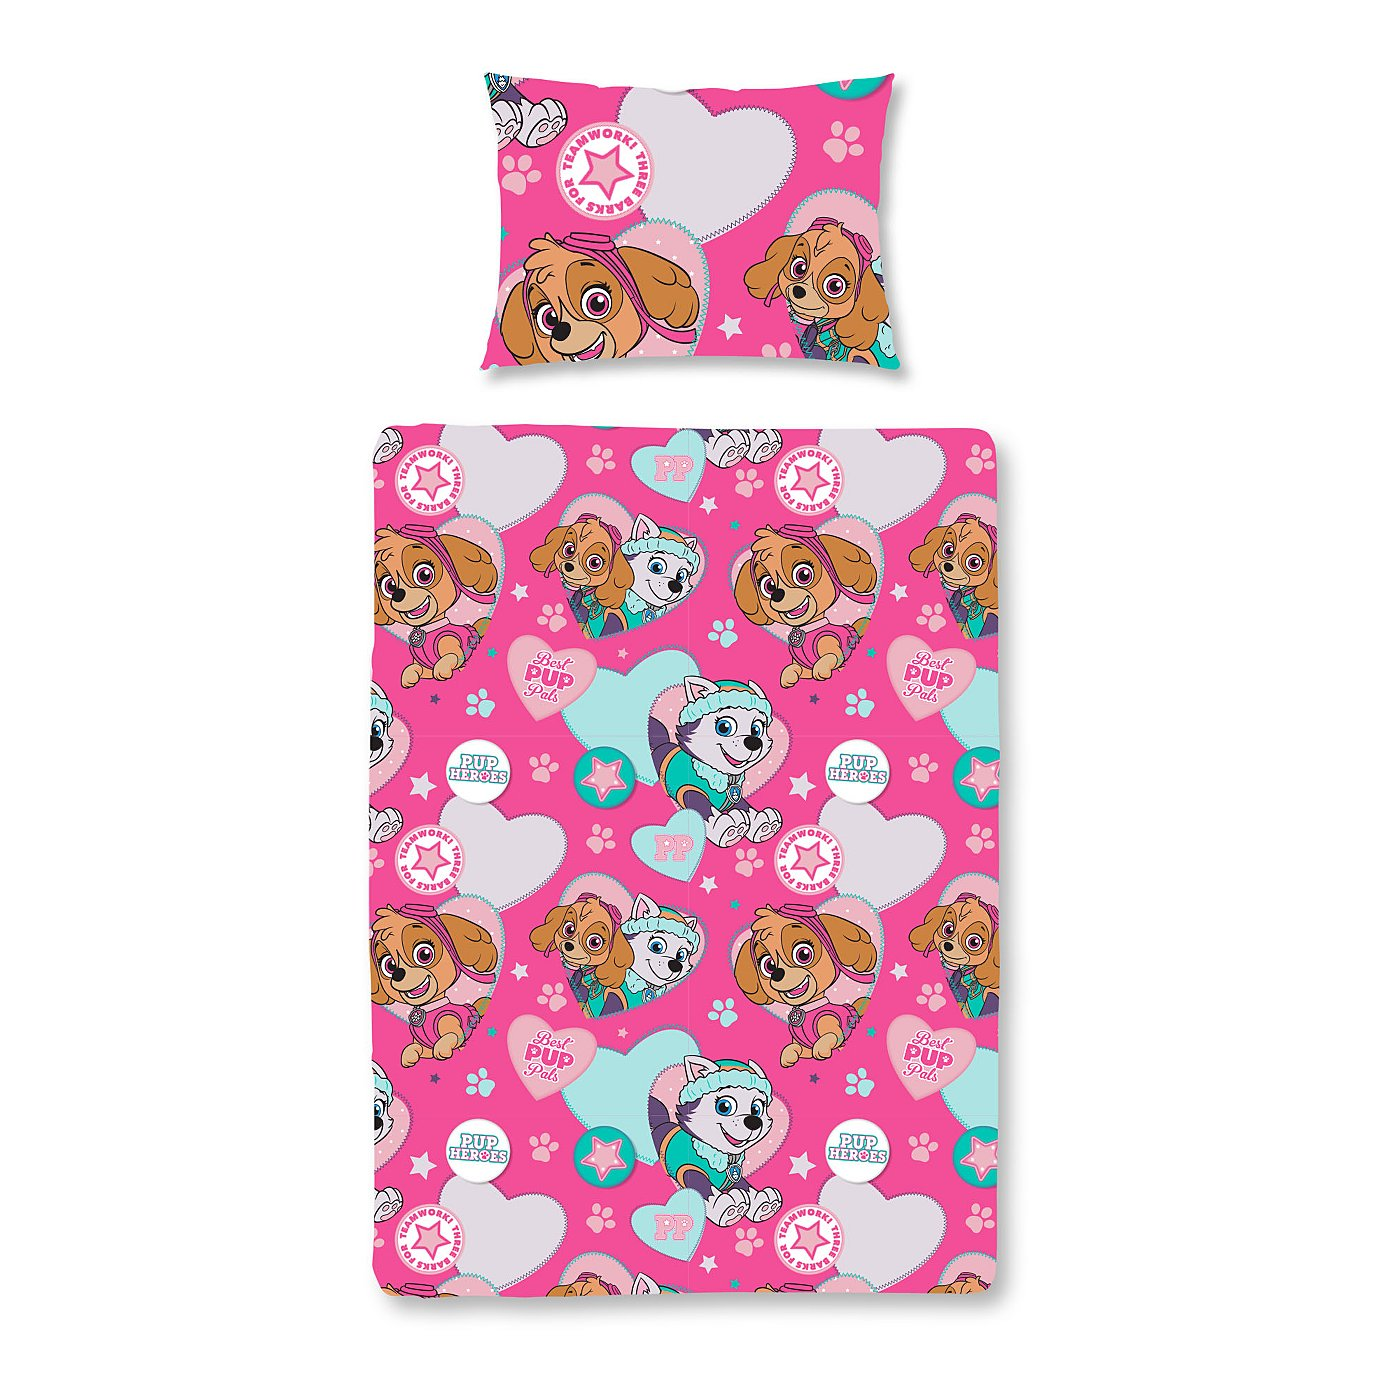 paw patrol skye and everest toddler bedding range loading zoom - Paw Patrol Toddler Bedding